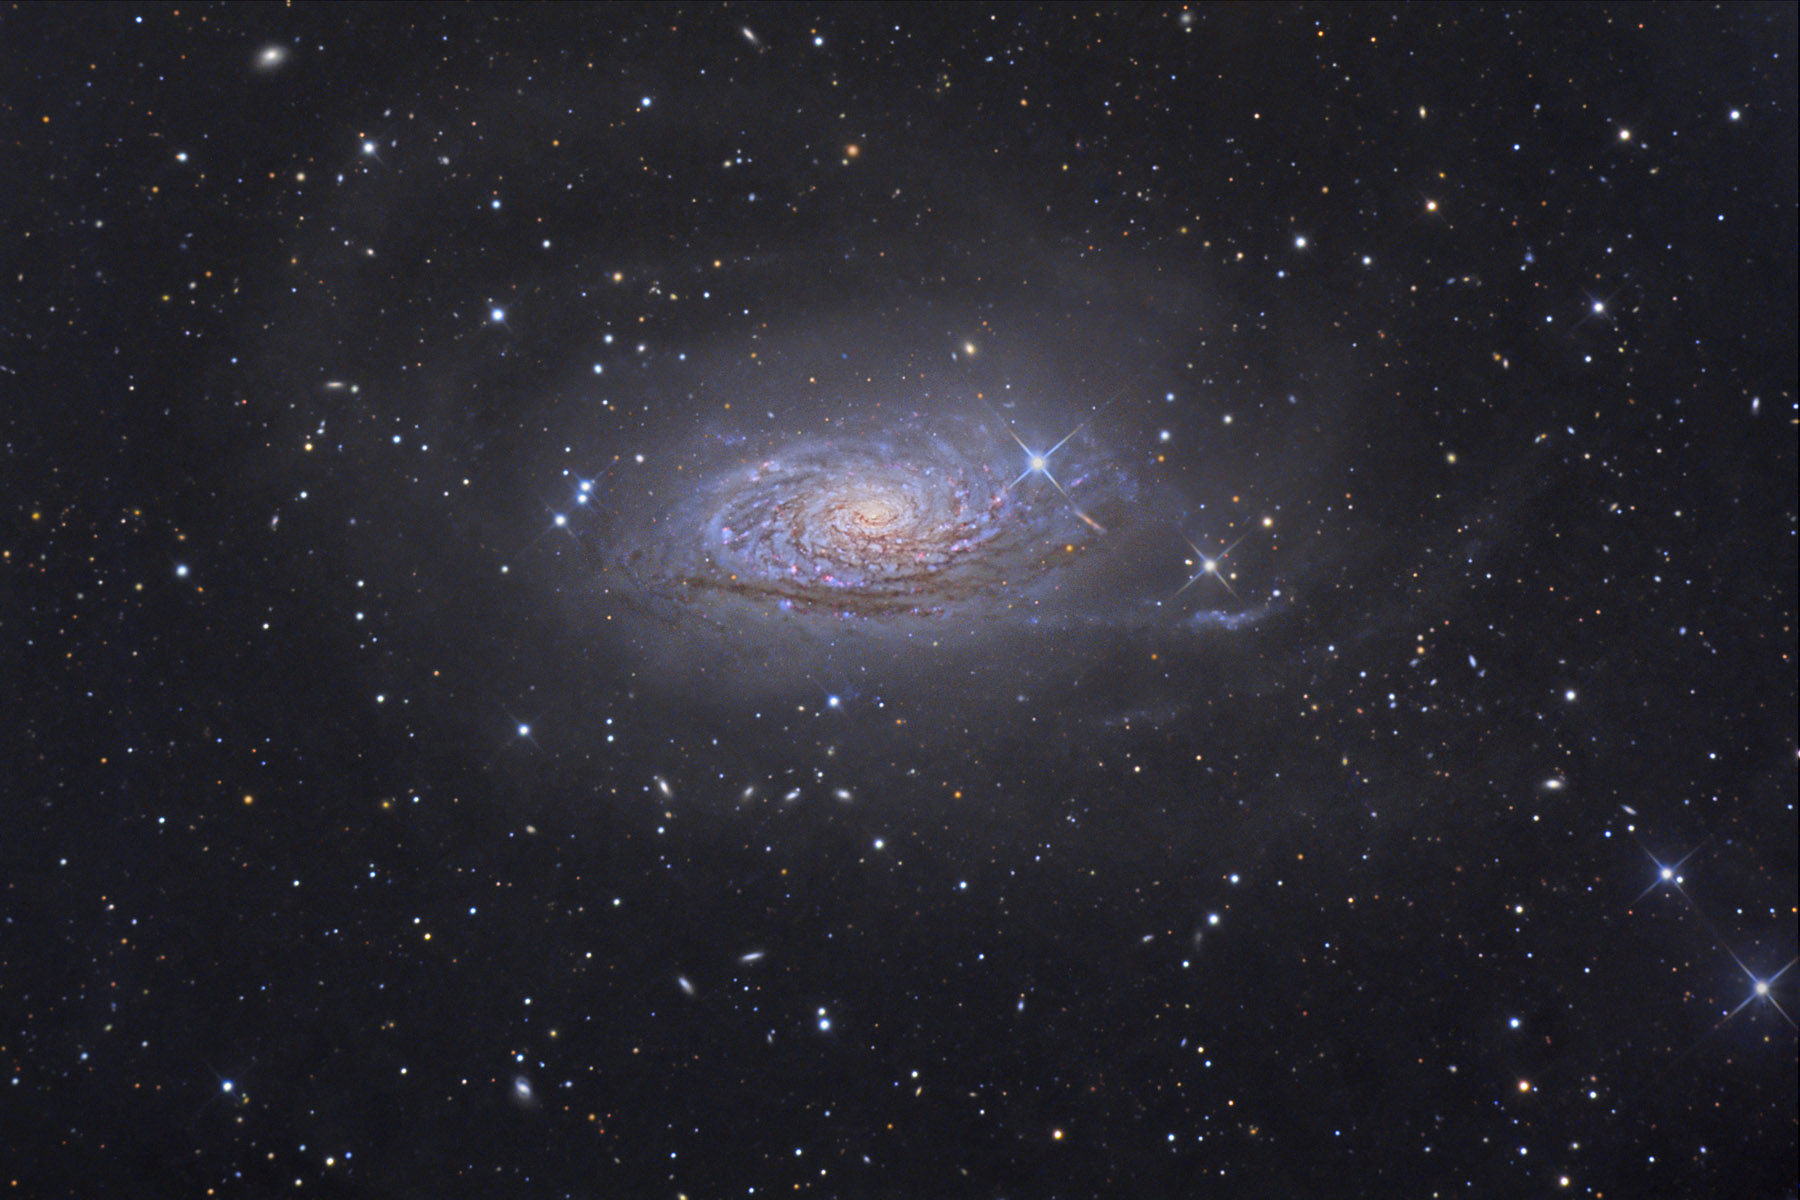 m63 'Sunflower Galaxy'